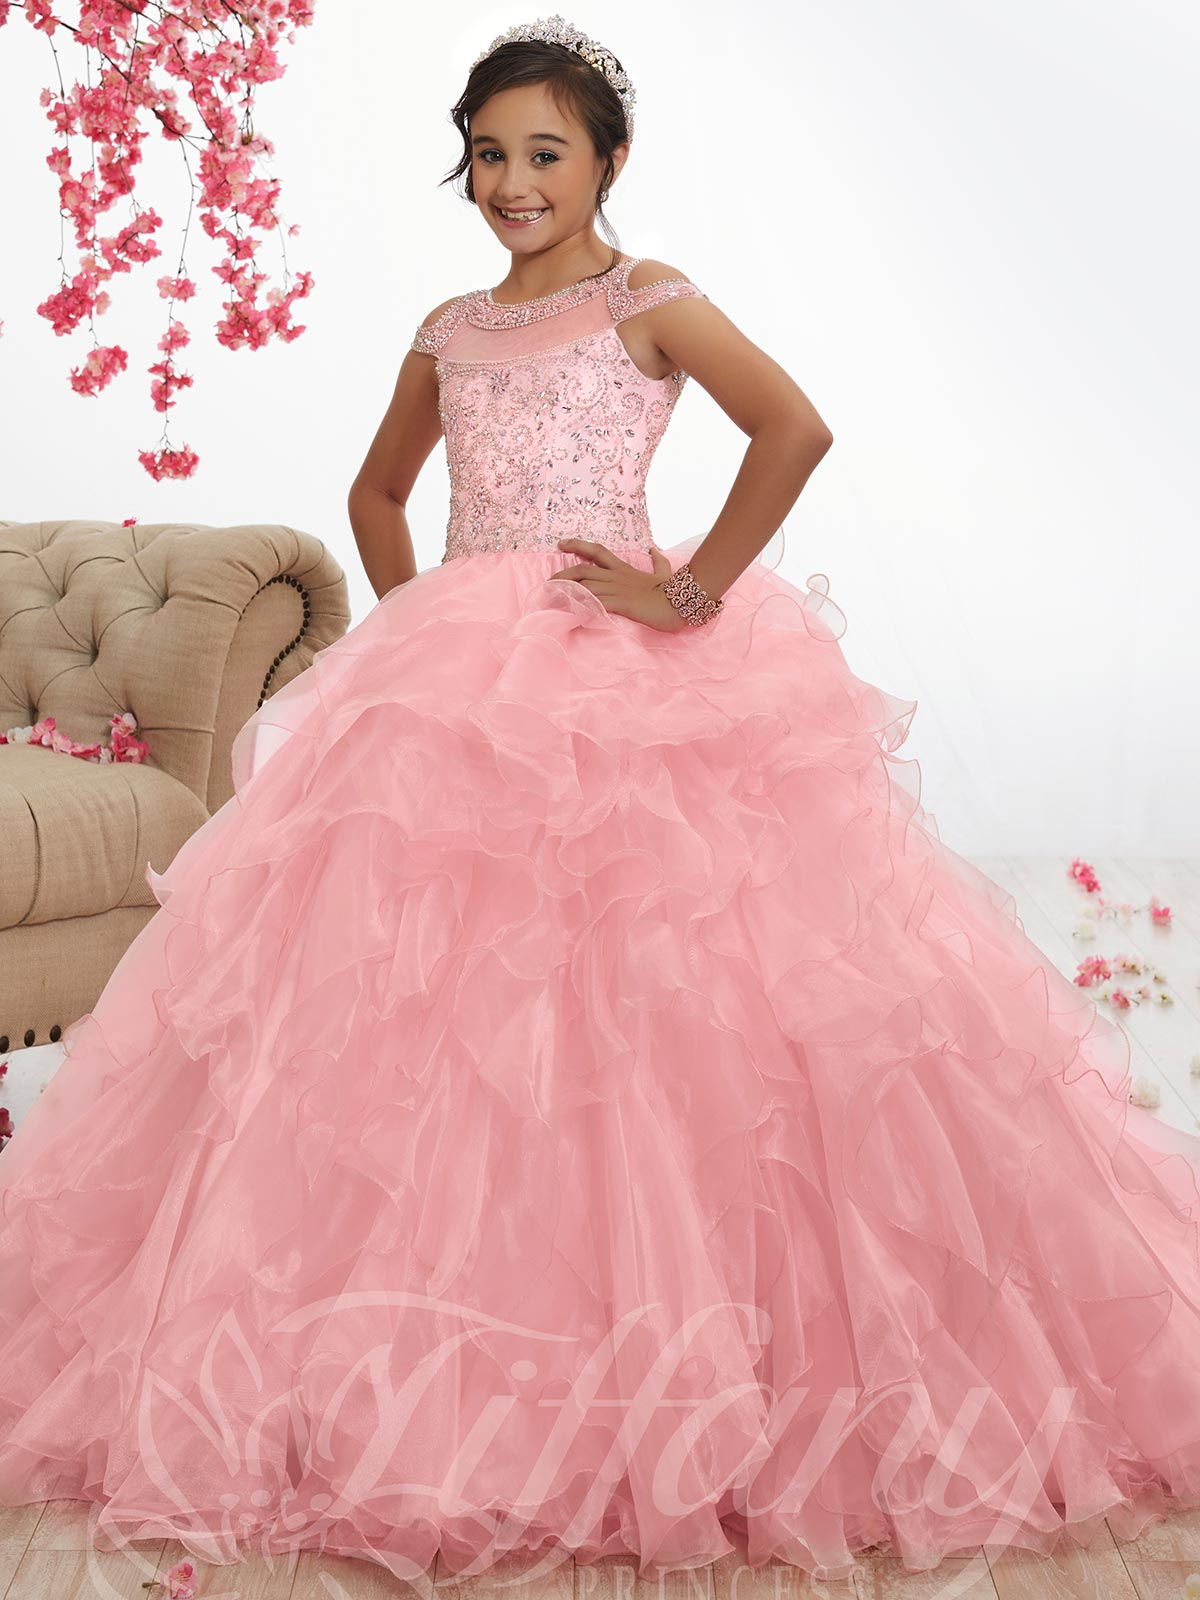 5ff7037c59f7 Tiffany Princess 13529 Satin Ball Pageant Gown